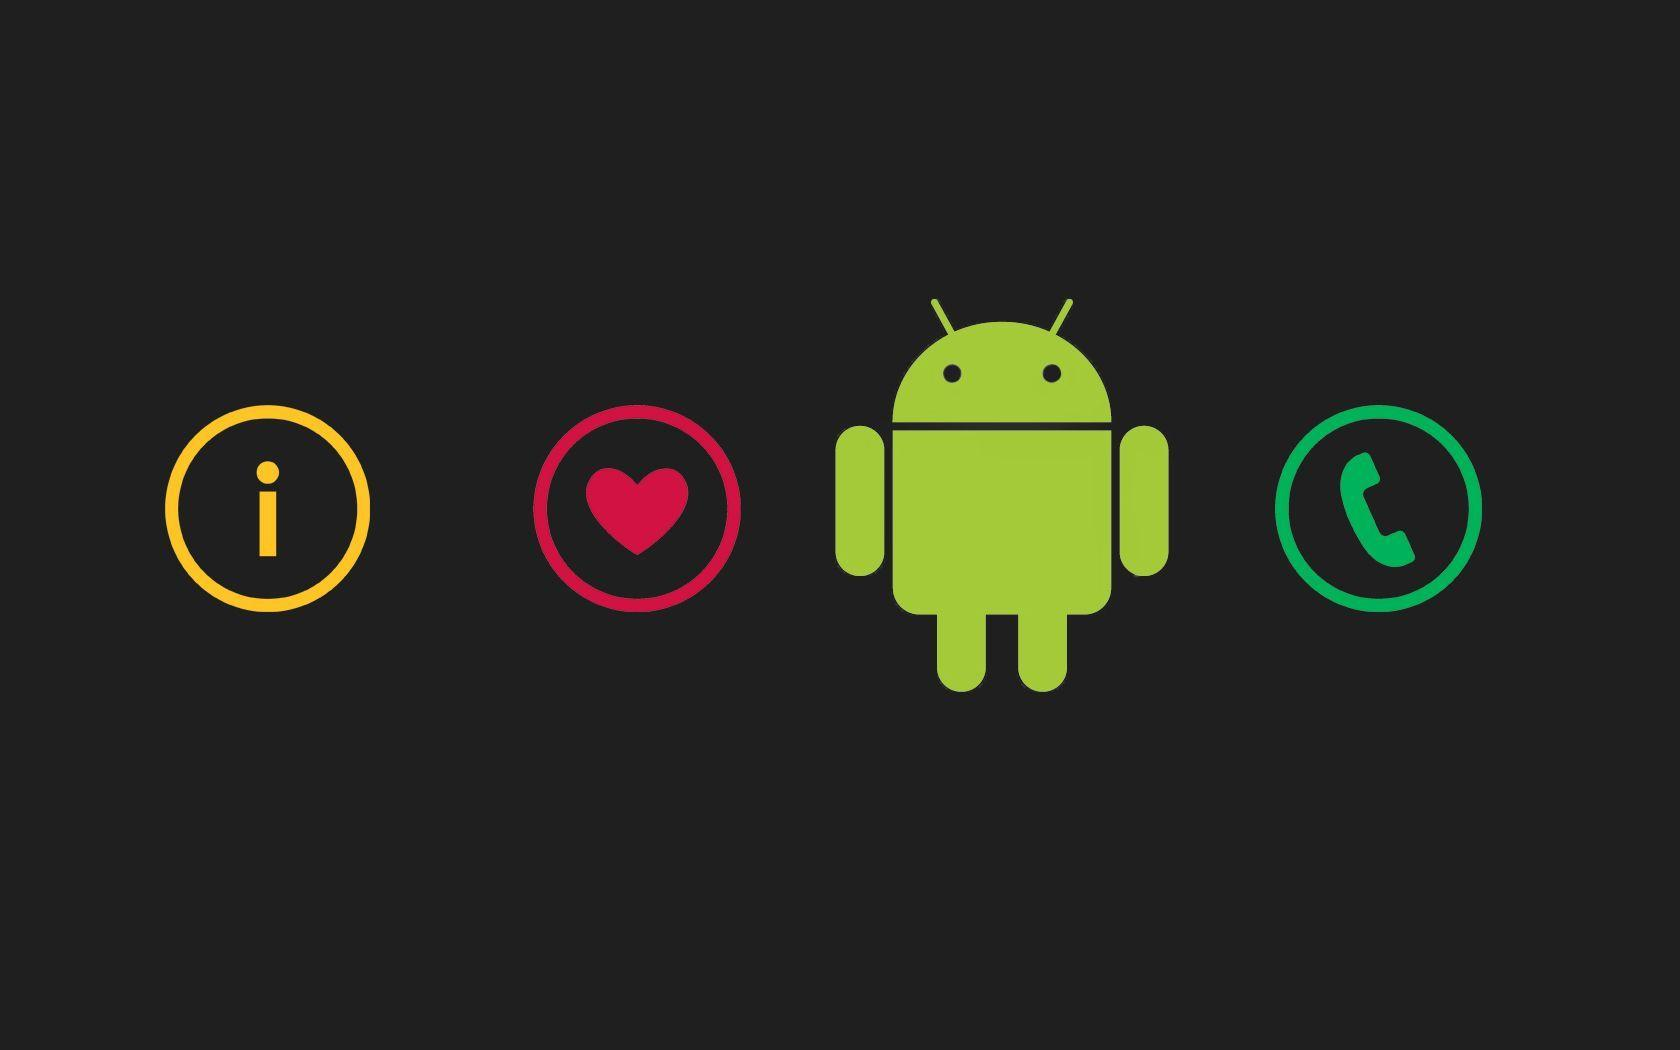 Love Wallpaper Line : Android Logo Wallpapers - Wallpaper cave